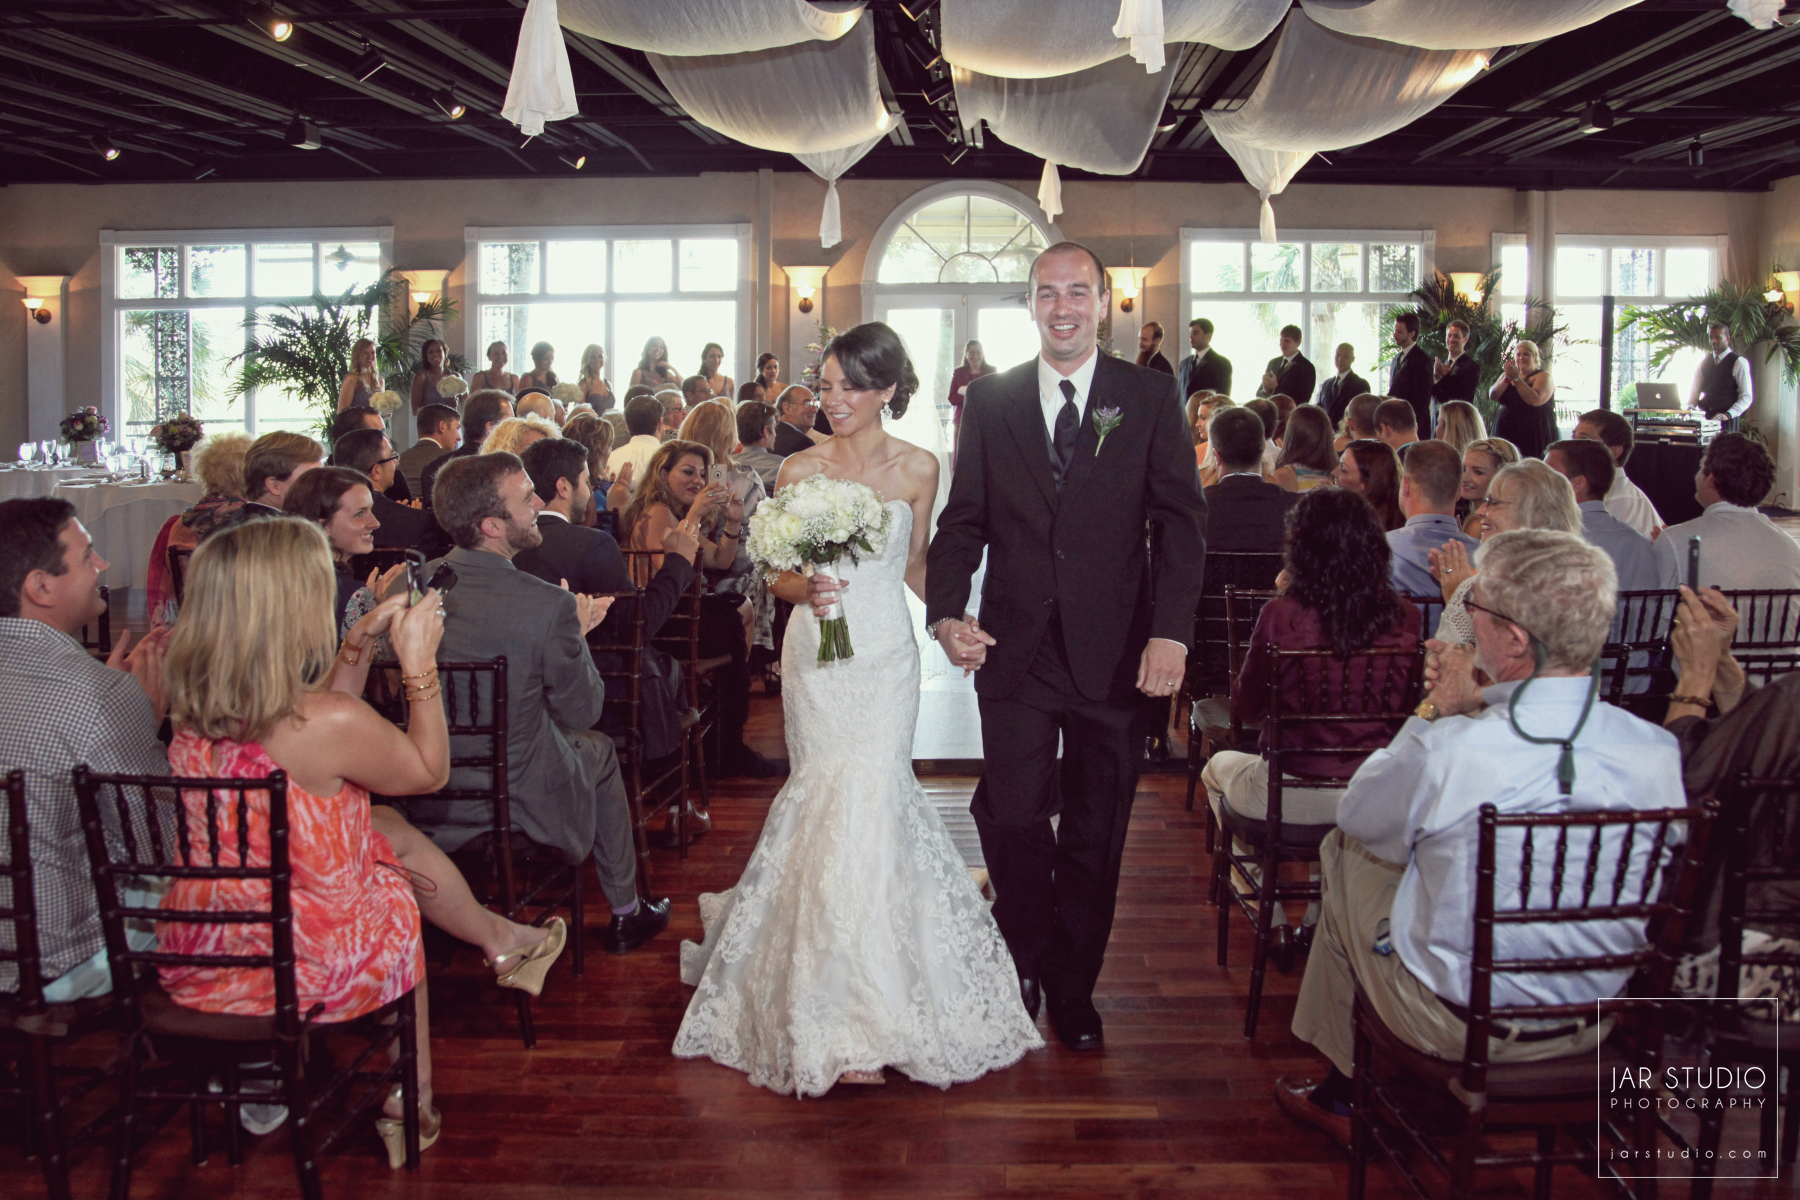 15-hitched-at-st.augustine-grand-ballroom-jarstudio-photography.JPG